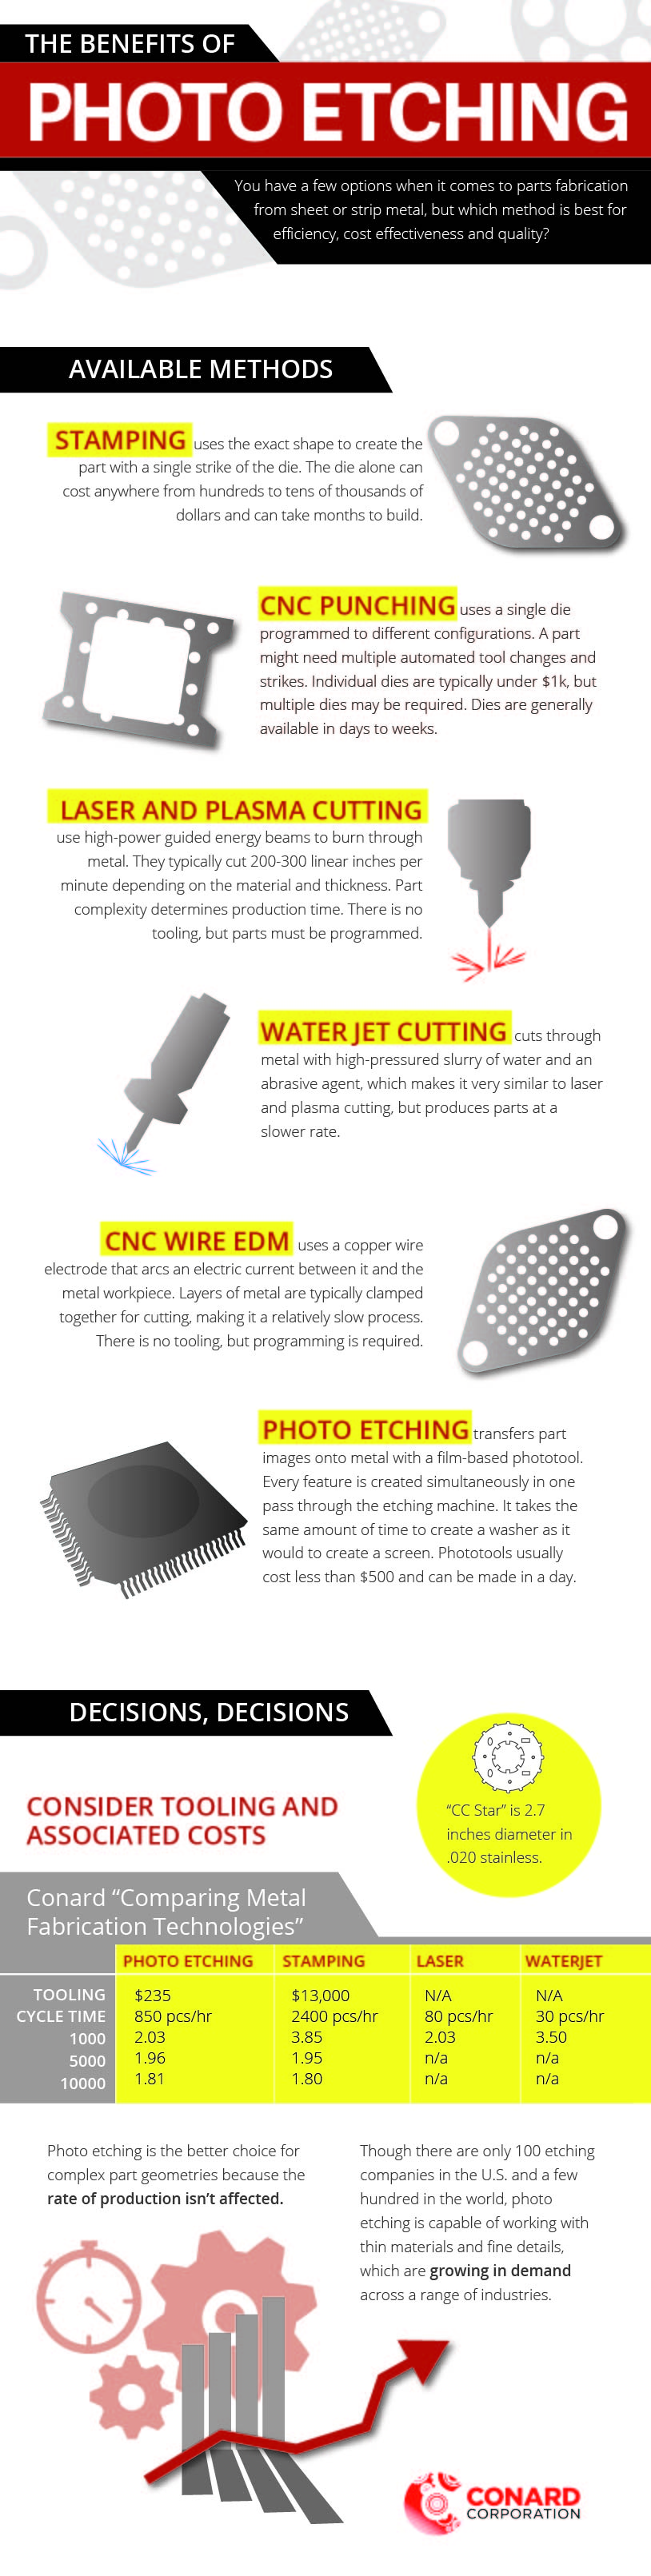 The Benefits of Photo Etching